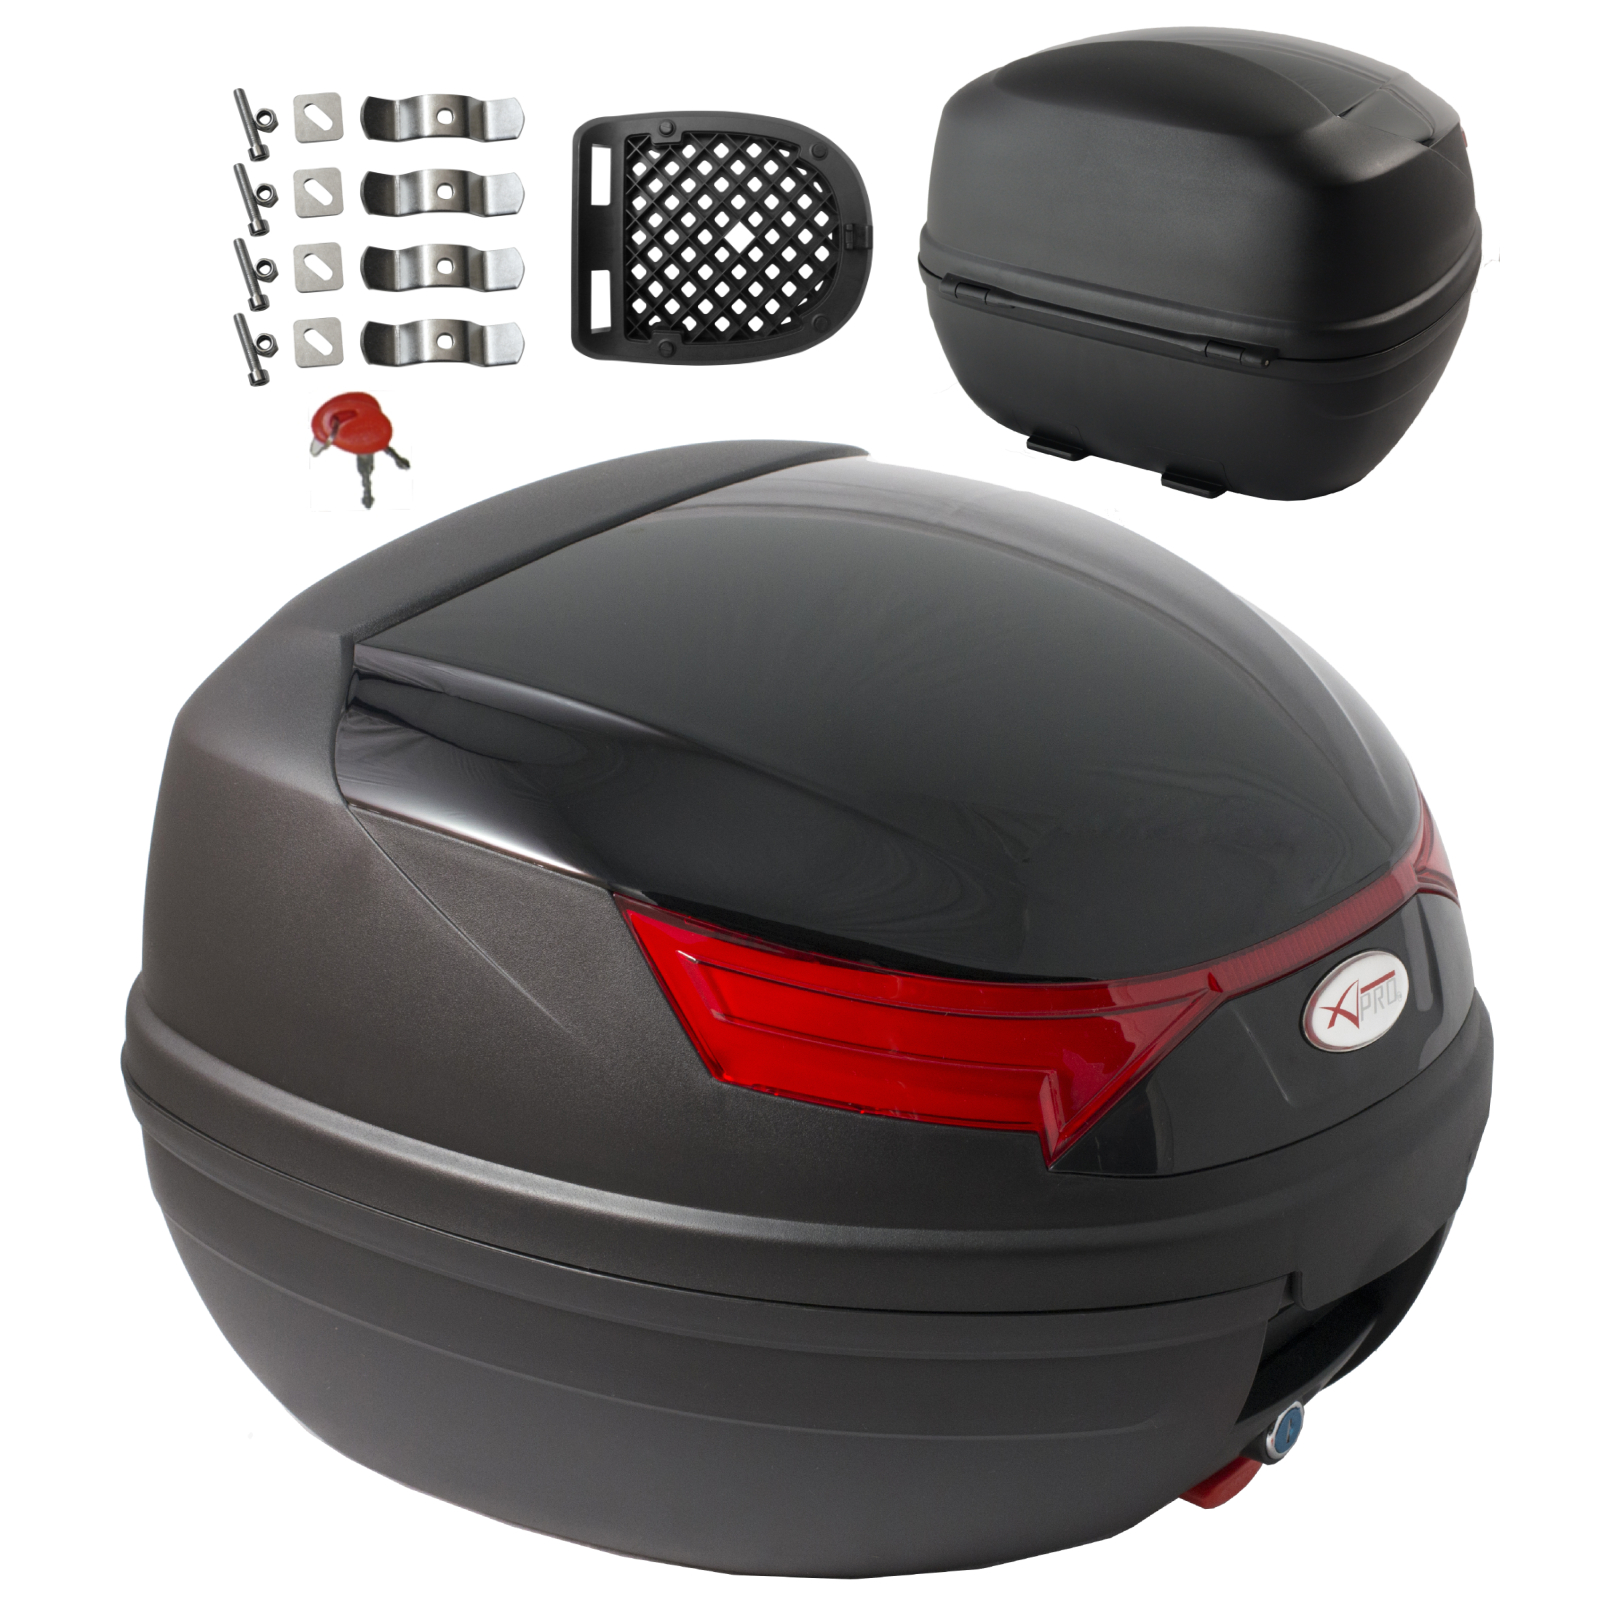 top case motorrad bremsleuchten top box koffer motorrad scooter quad 32 l ebay. Black Bedroom Furniture Sets. Home Design Ideas